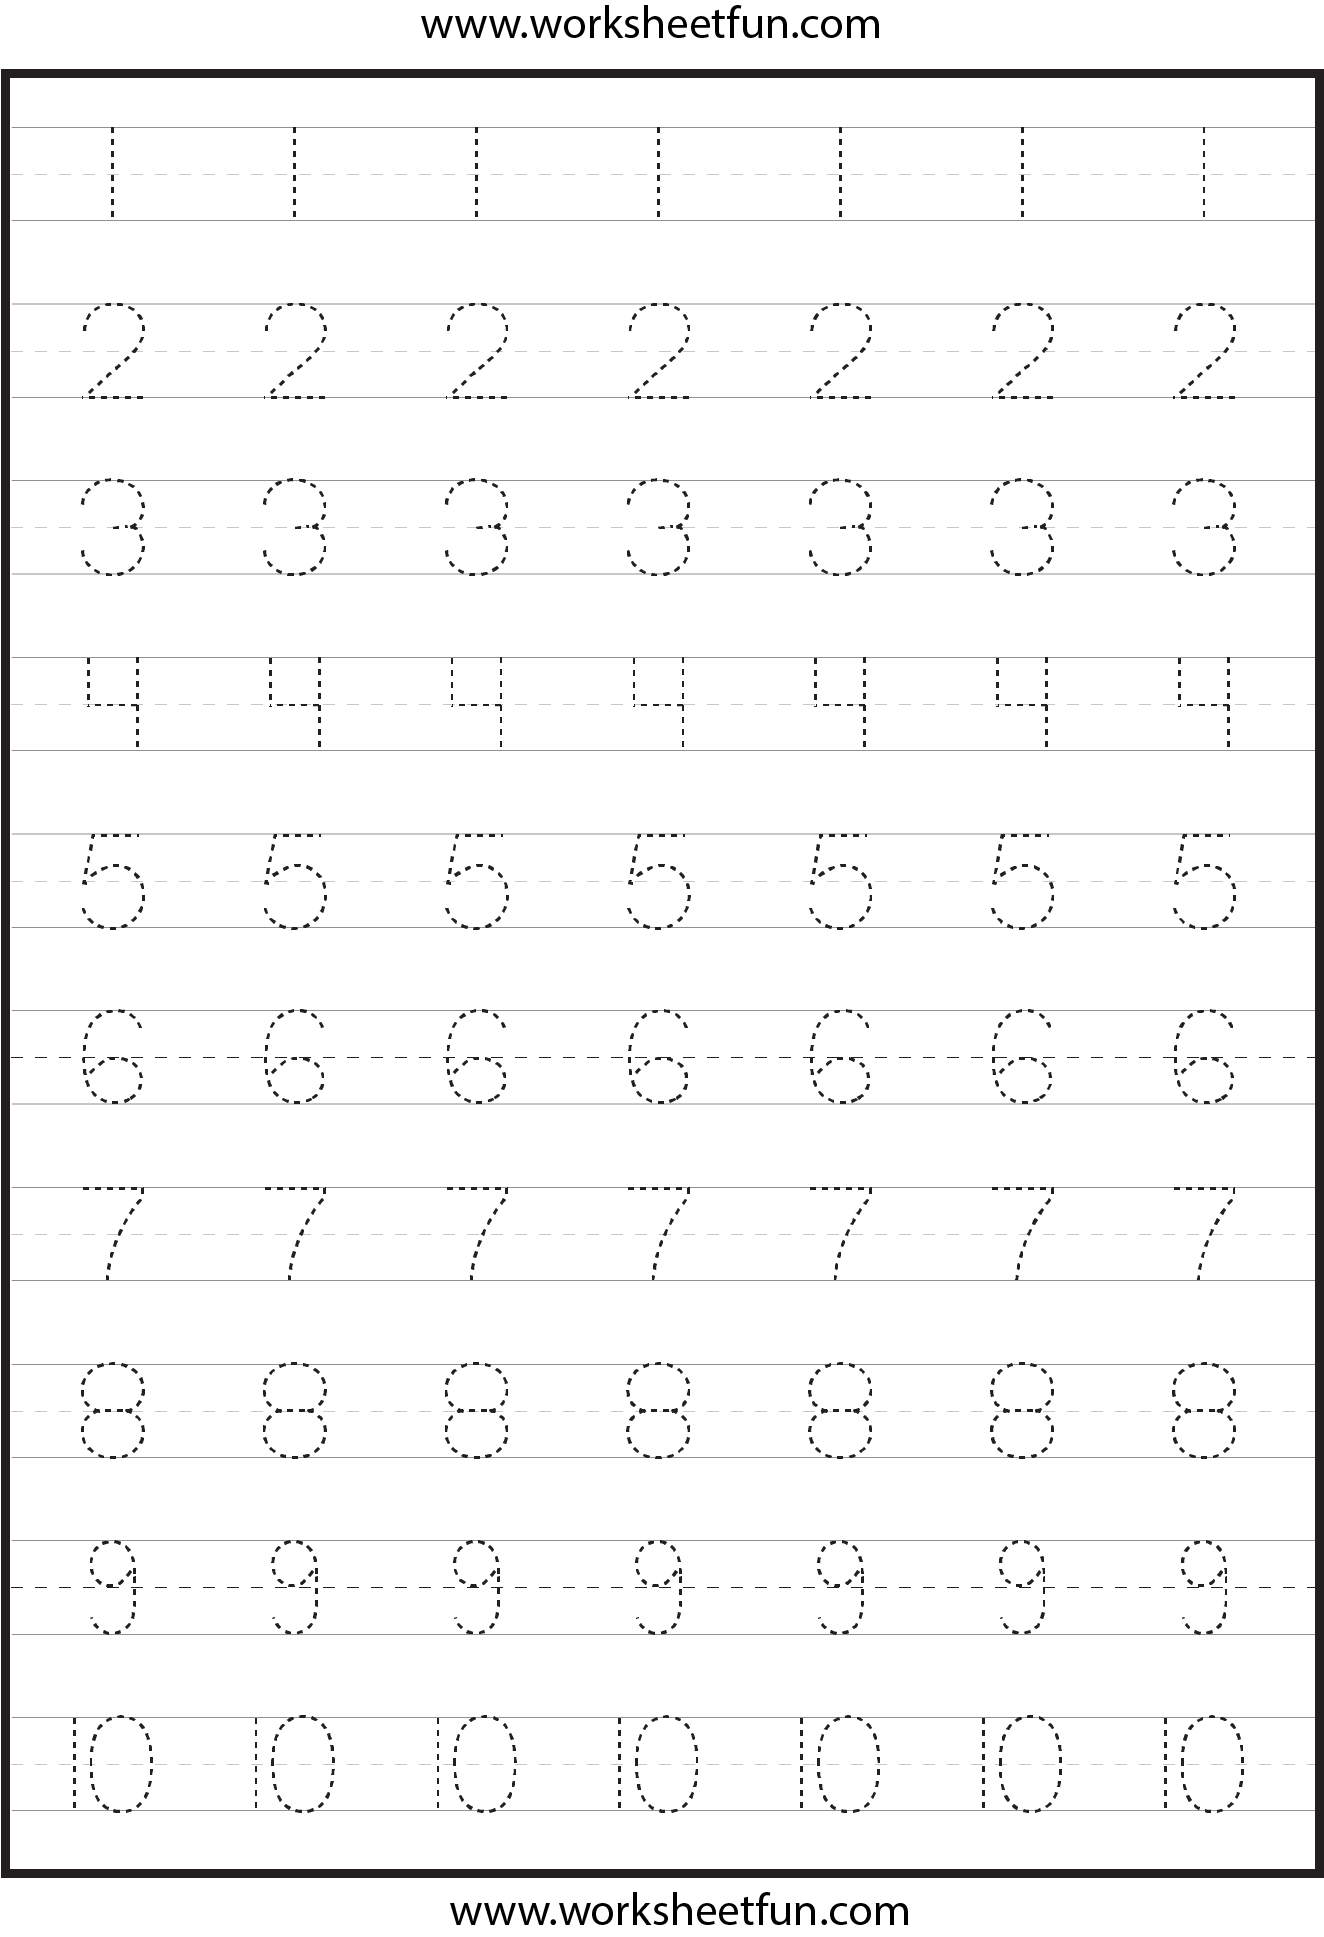 Worksheets Number Tracing Worksheets number tracing worksheets for kindergarten 1 10 ten worksheets